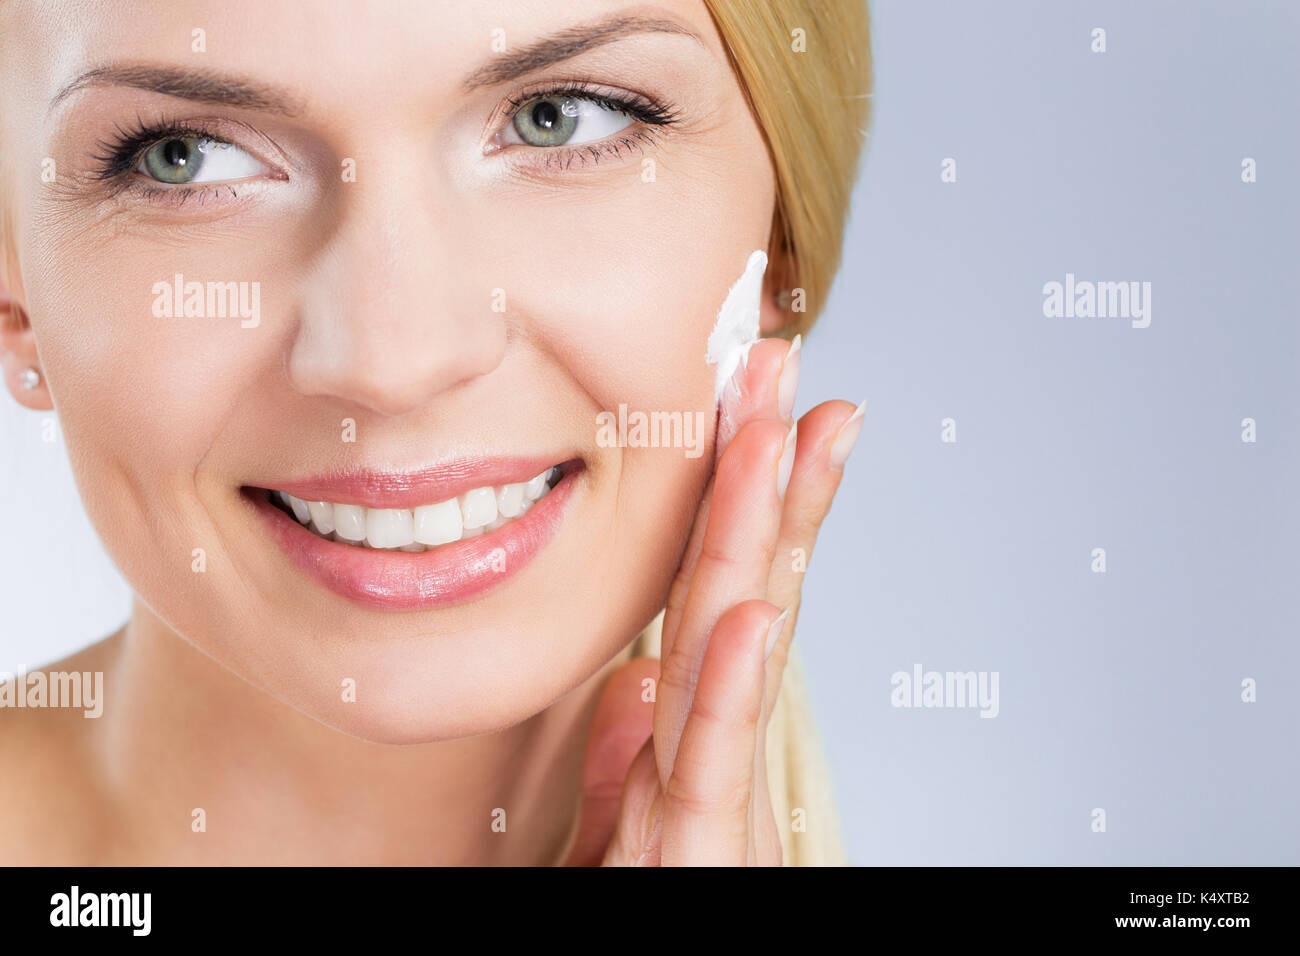 Close up portrait of happy woman applying cream on face looking away - Stock Image